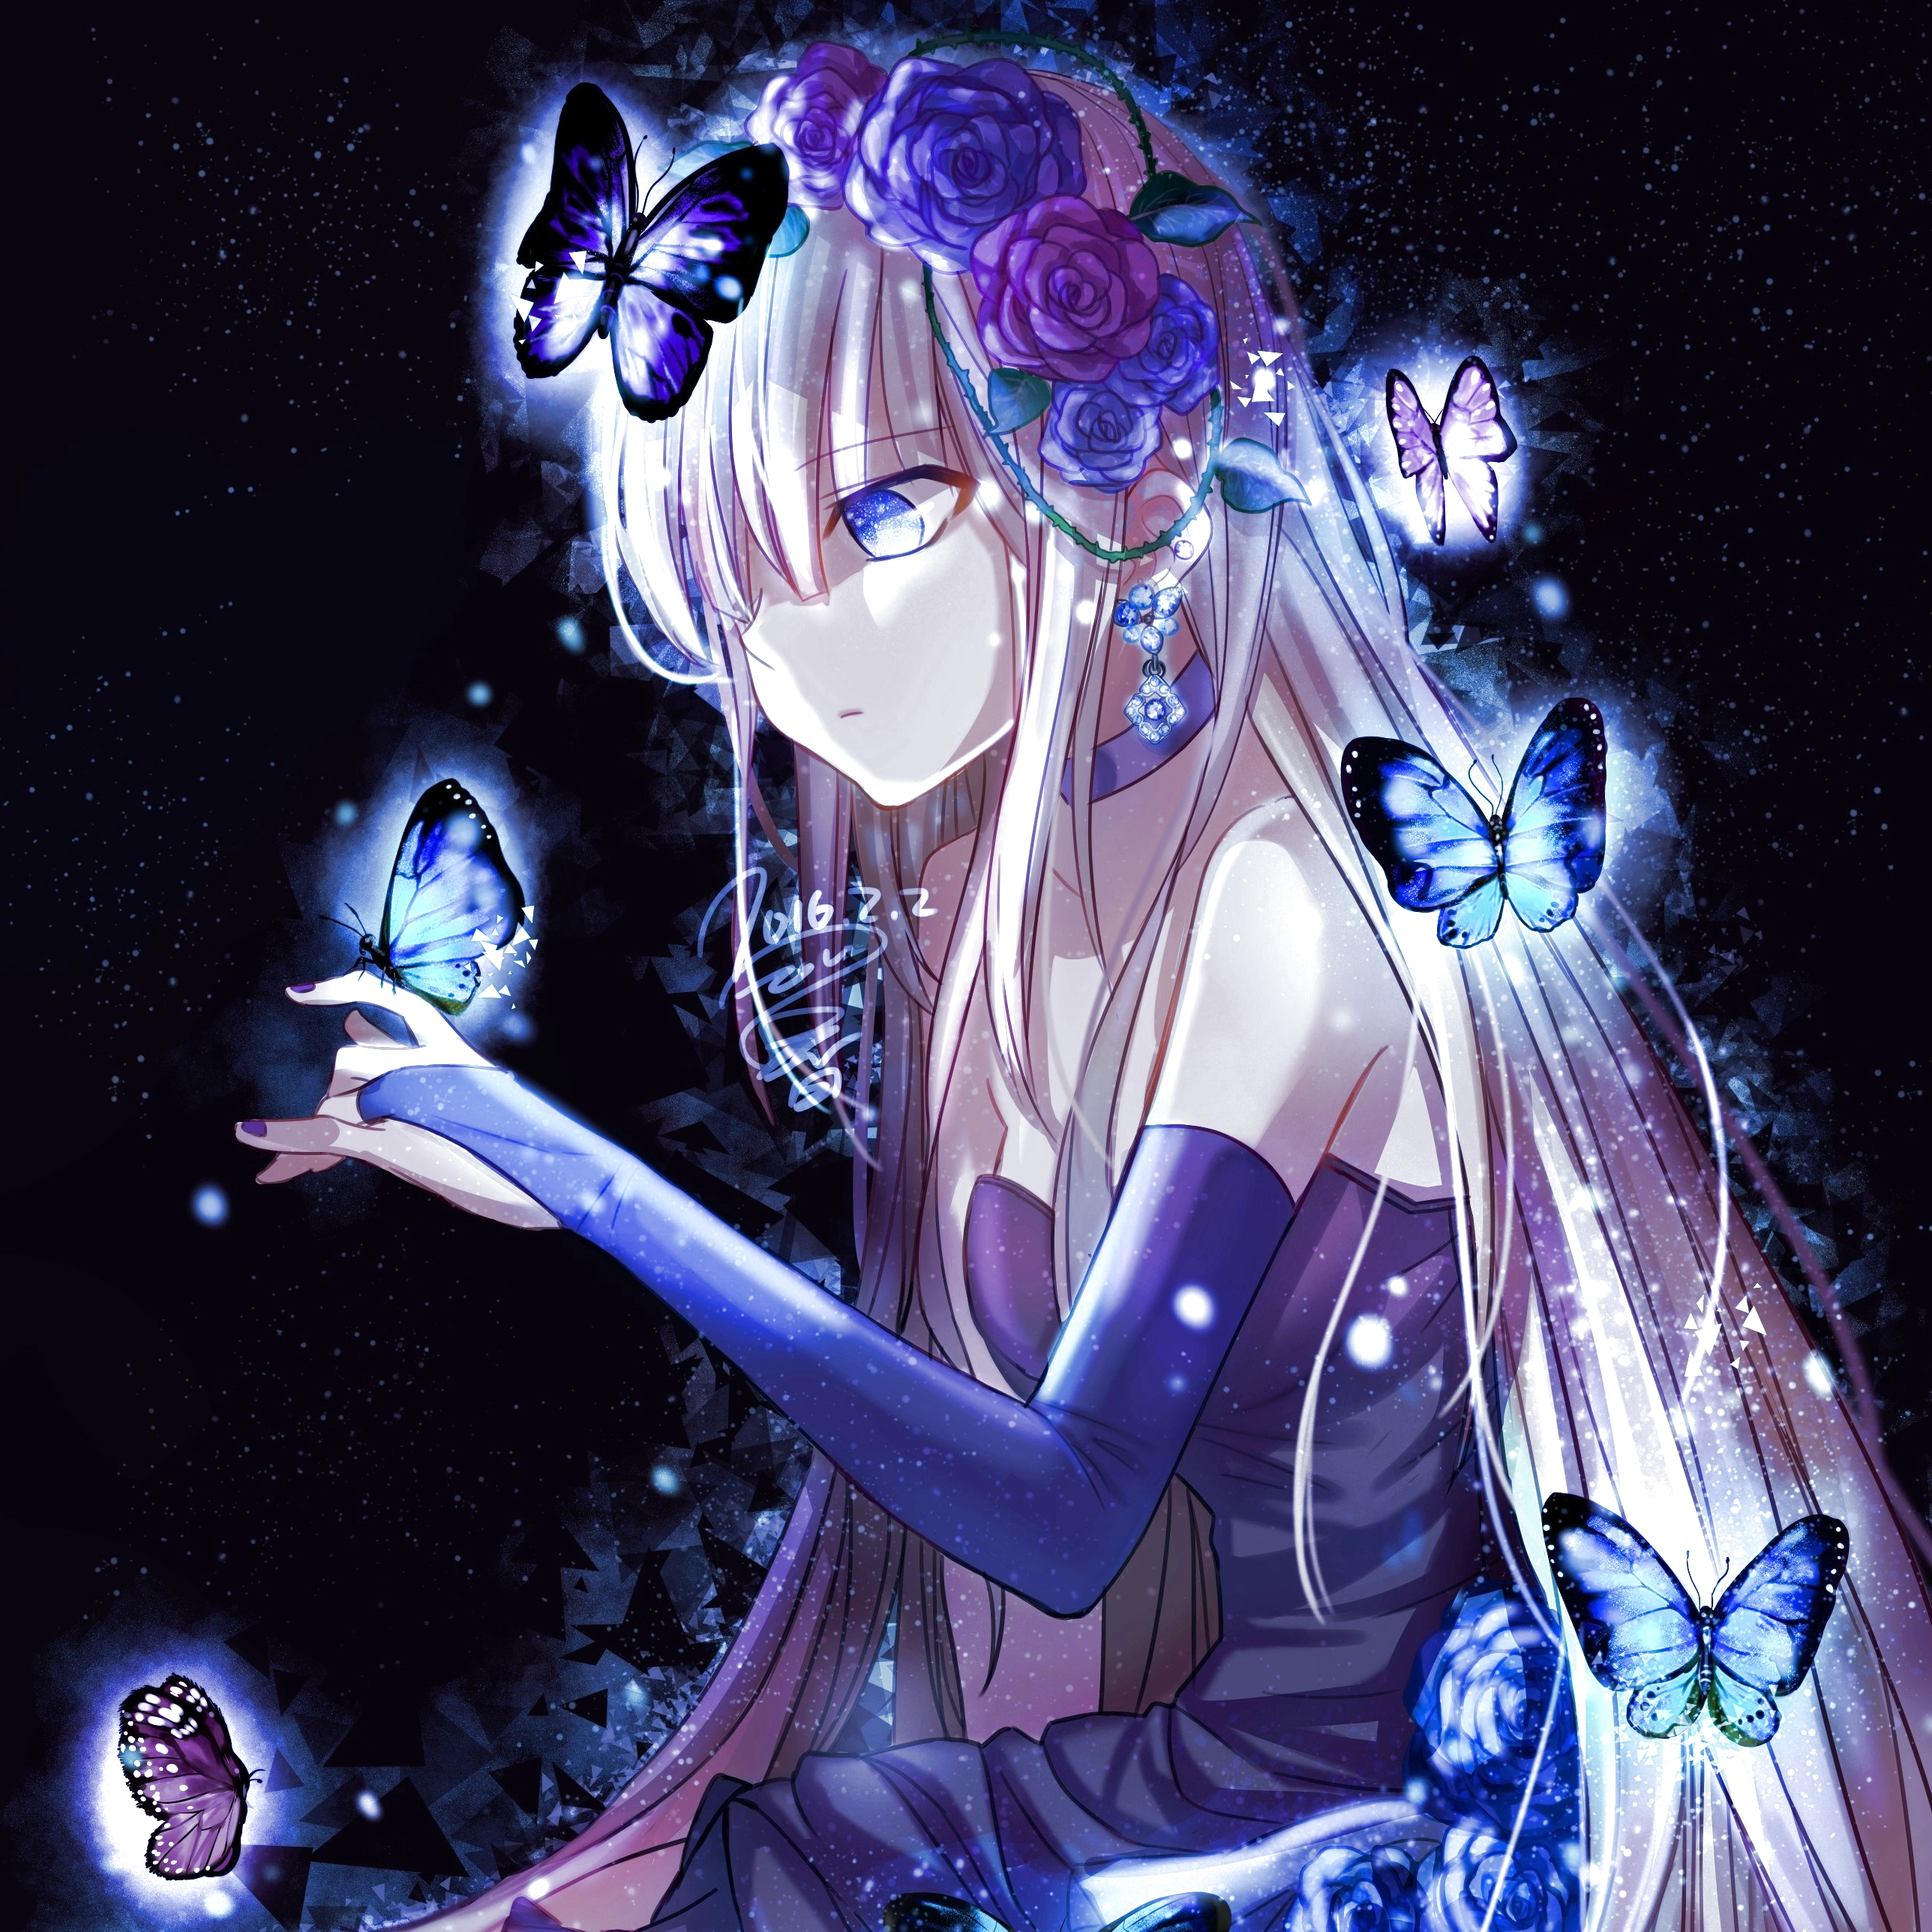 Anime girl and butterflies avatar id 112888